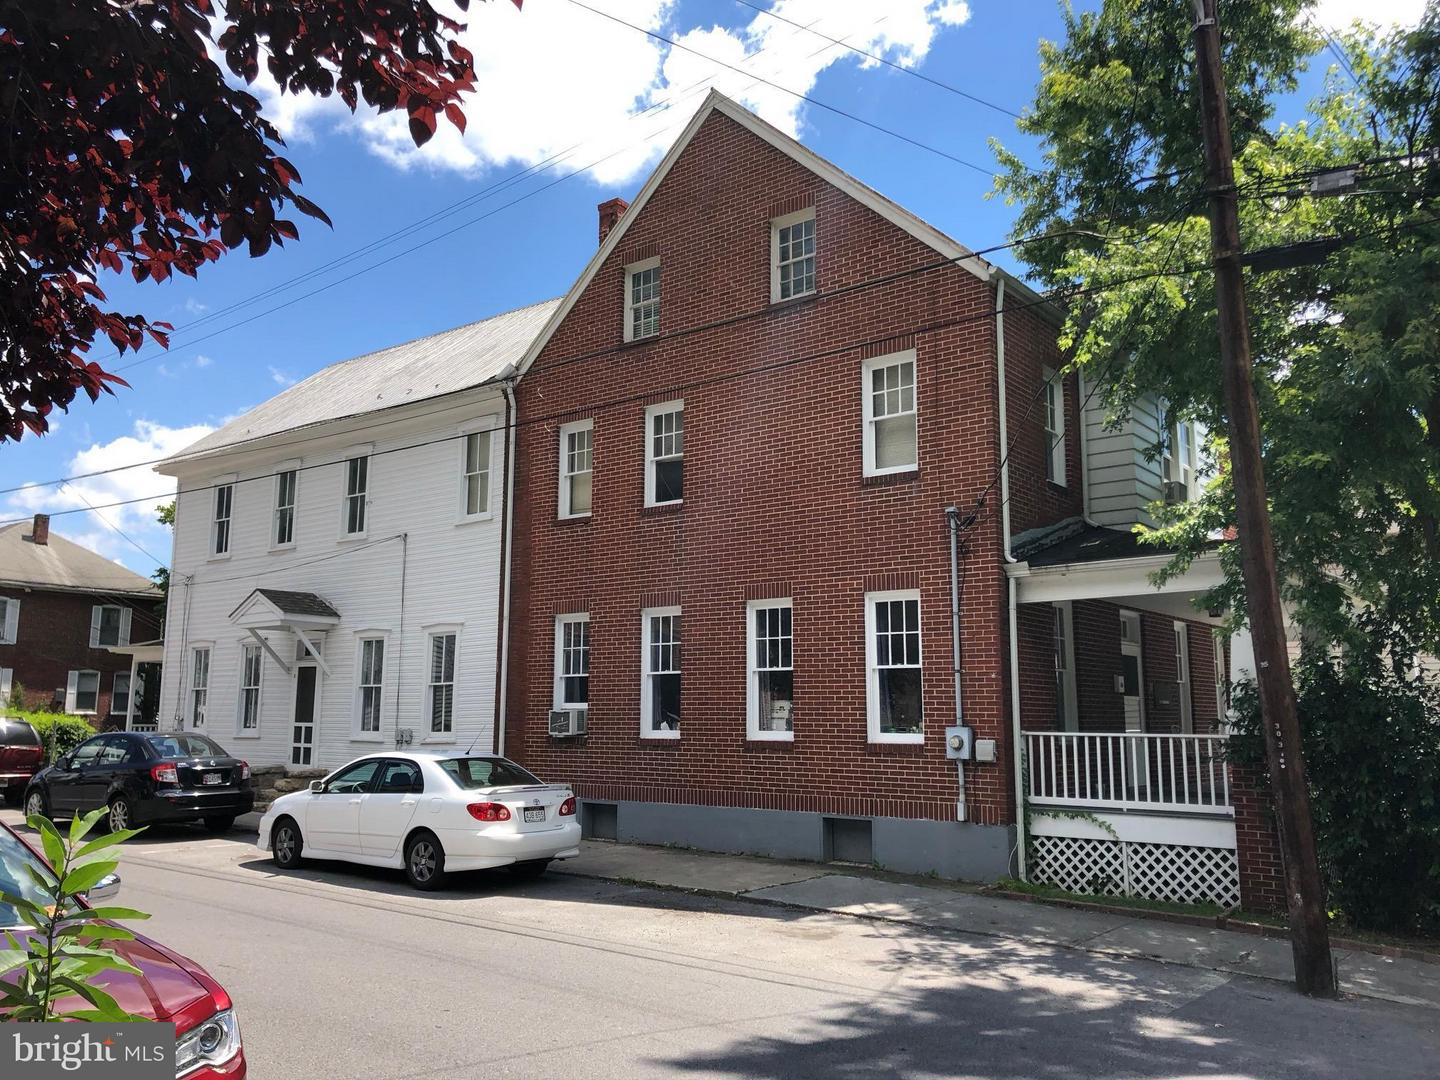 Commercial for Sale at 31 Congress St Berkeley Springs, West Virginia 25411 United States